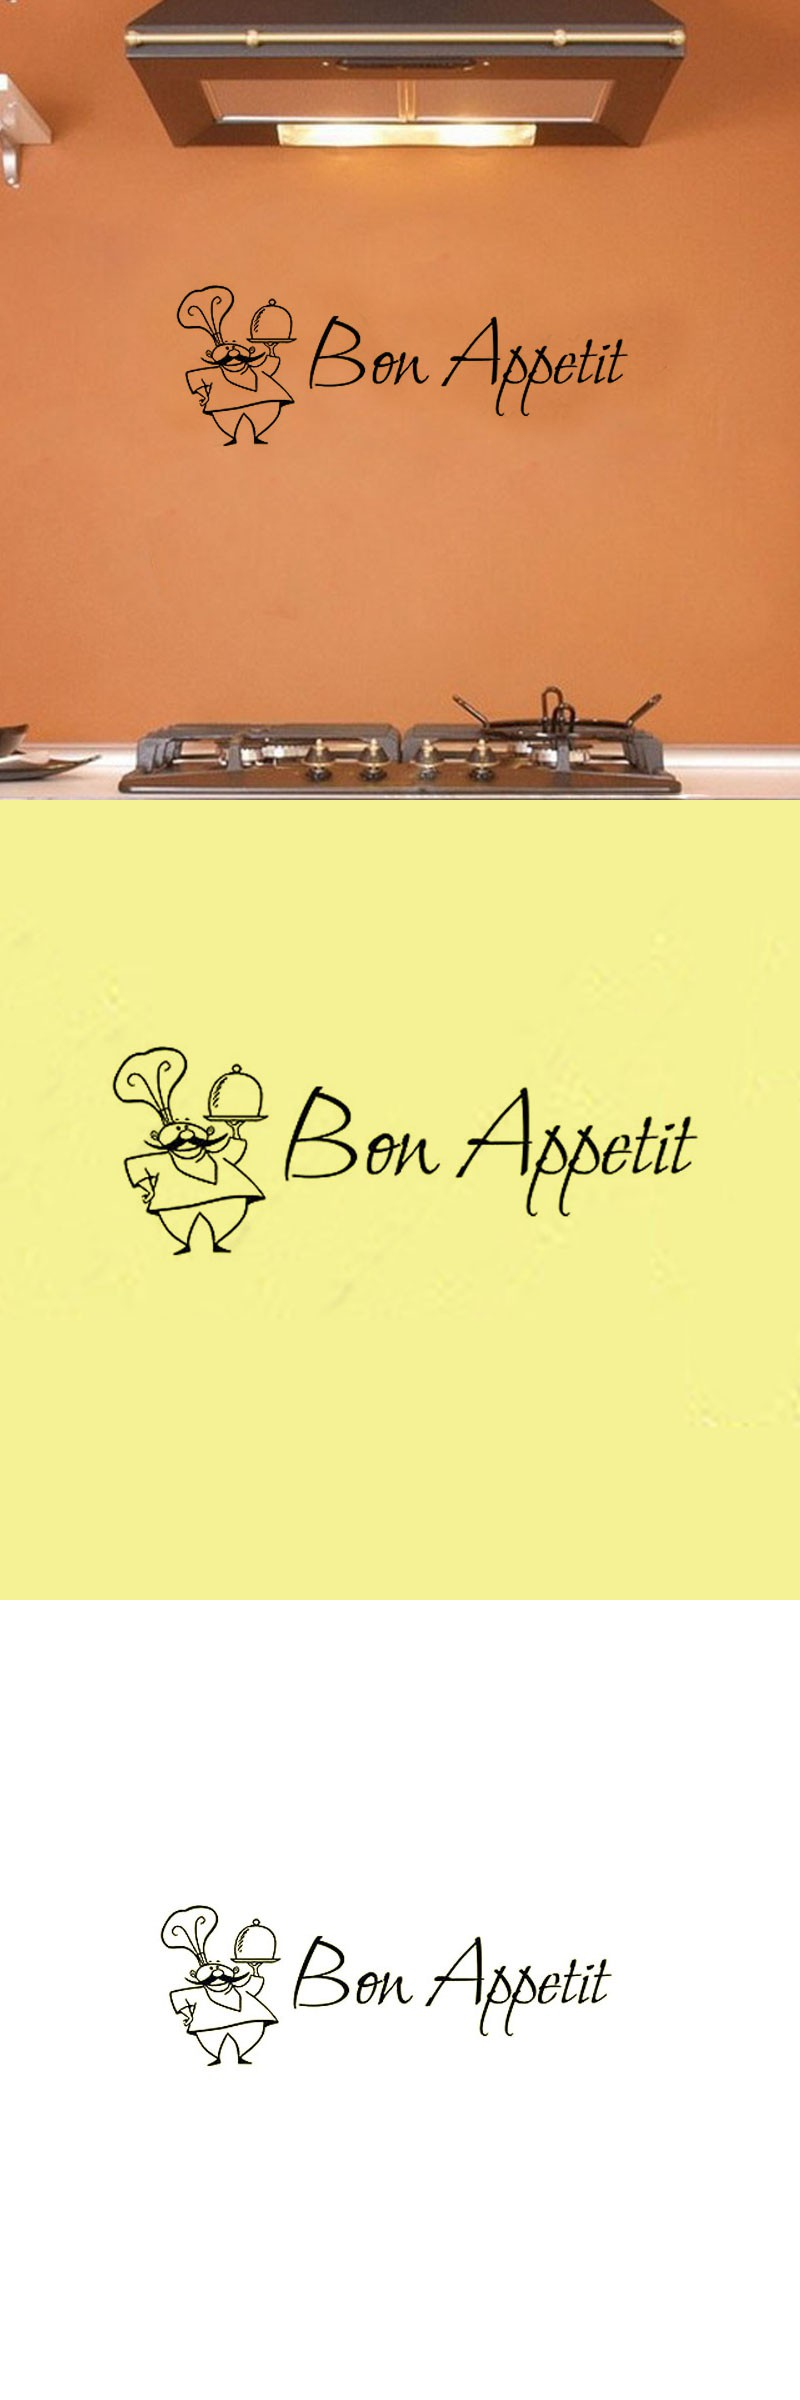 Bon Appetit Wall Sticker French A Chef Decorative Vinyl Wall Decals ...